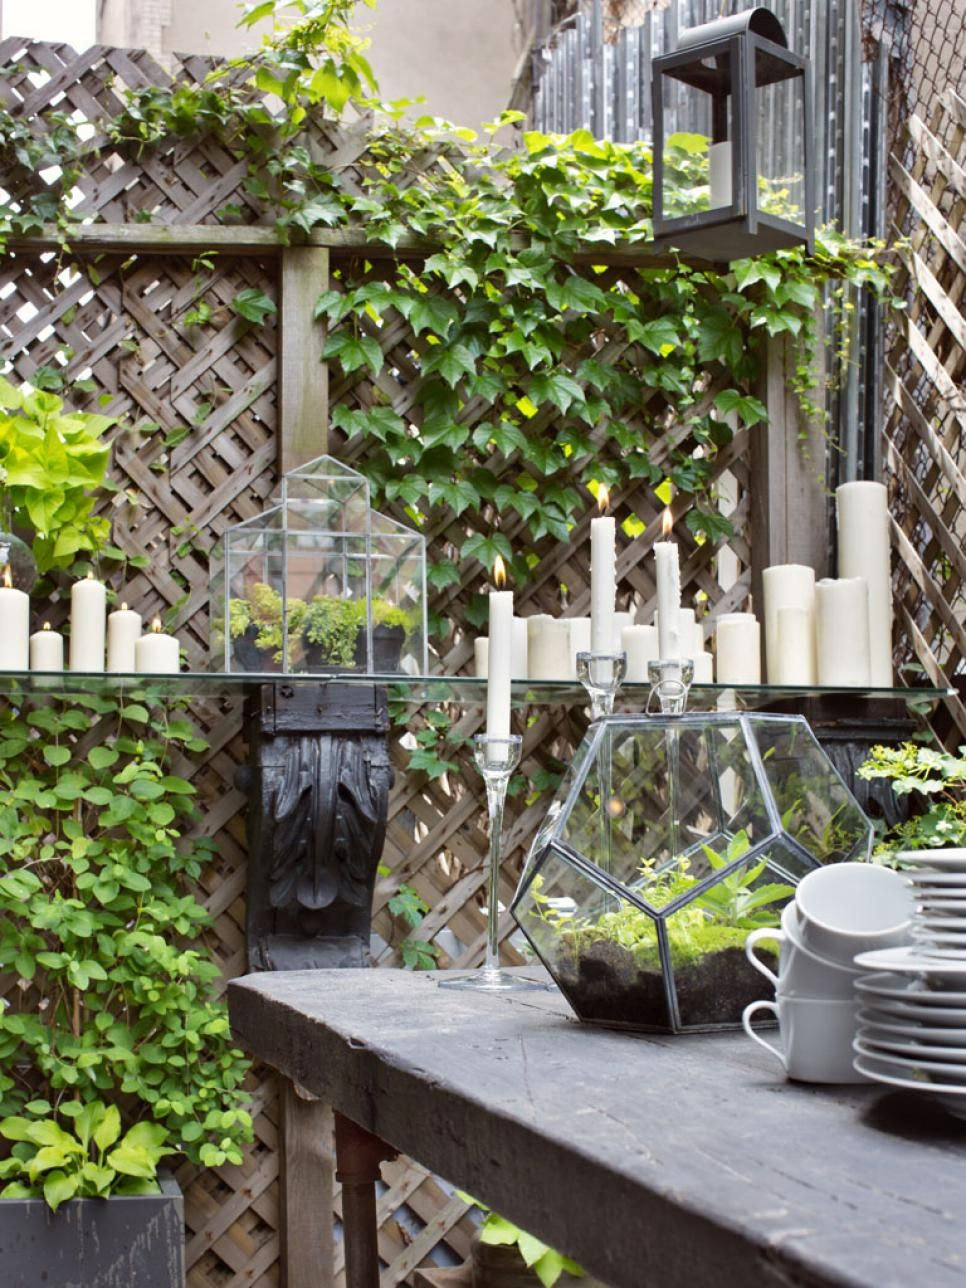 18 Small Yards, Balconies and Rooftop Patios | Interior Design Styles and Color Schemes for Home Decorating | HGTV